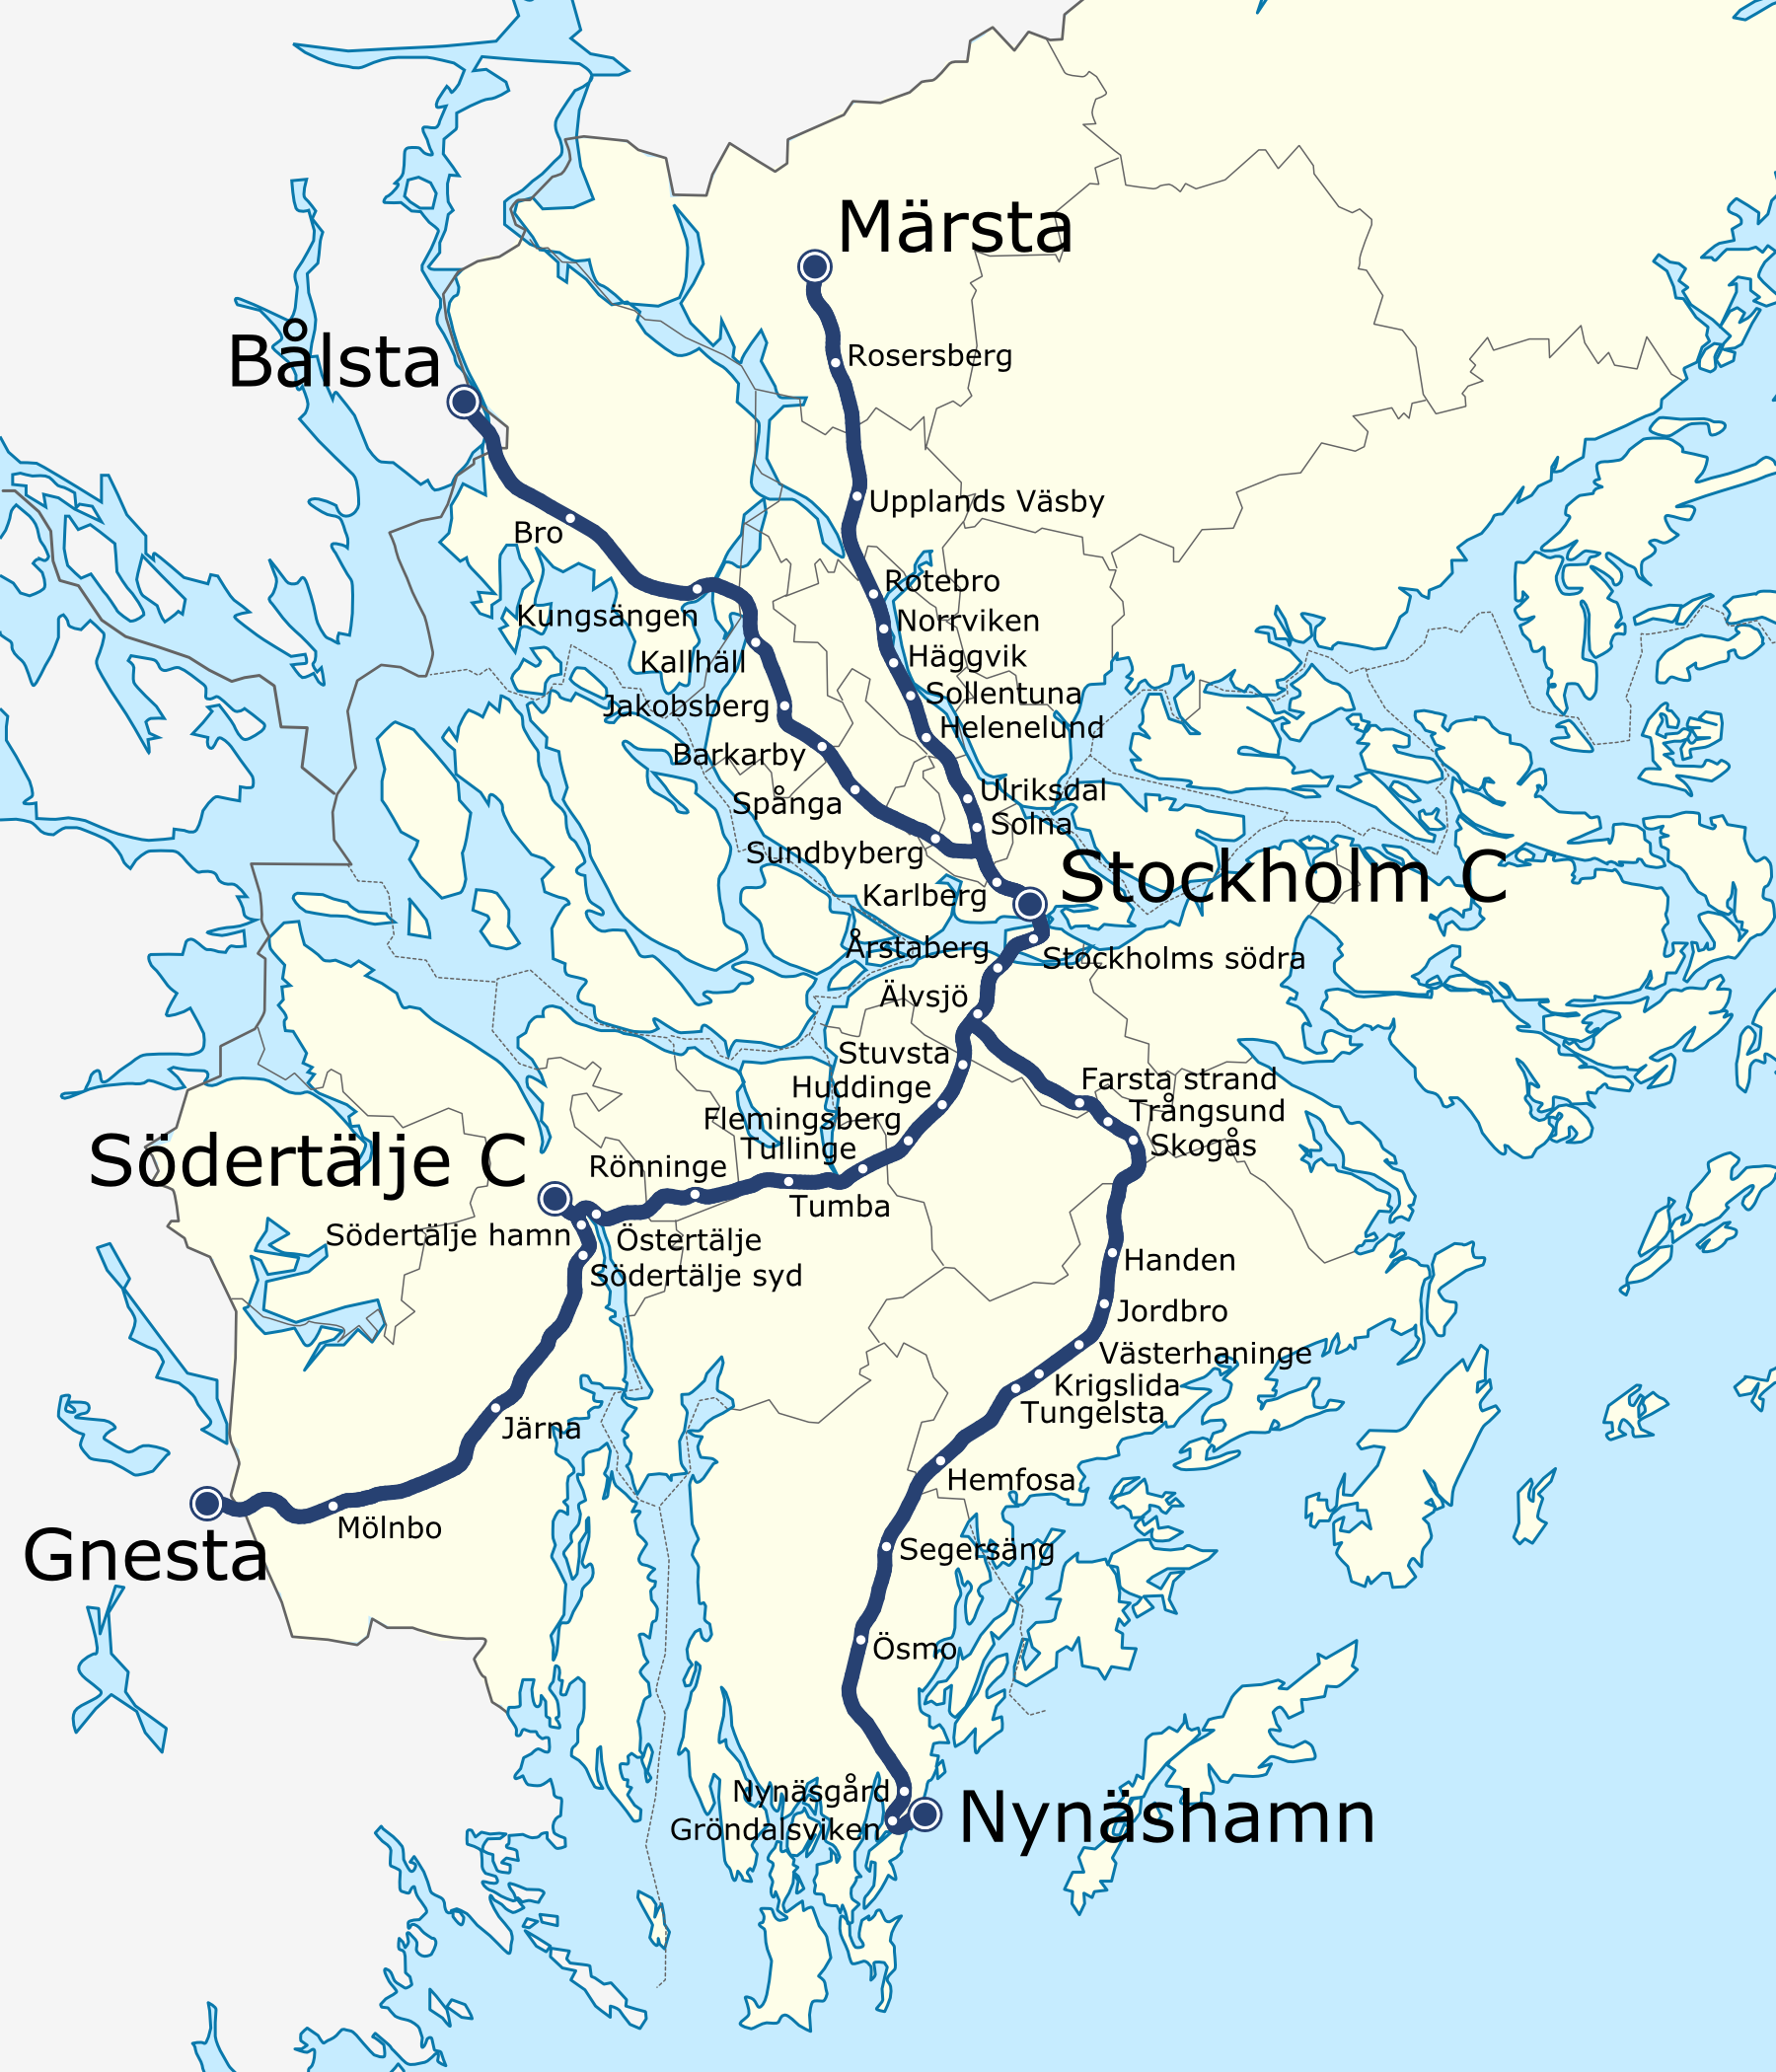 File:Stockholm commuter rail geographic map.png - Wikimedia Commons